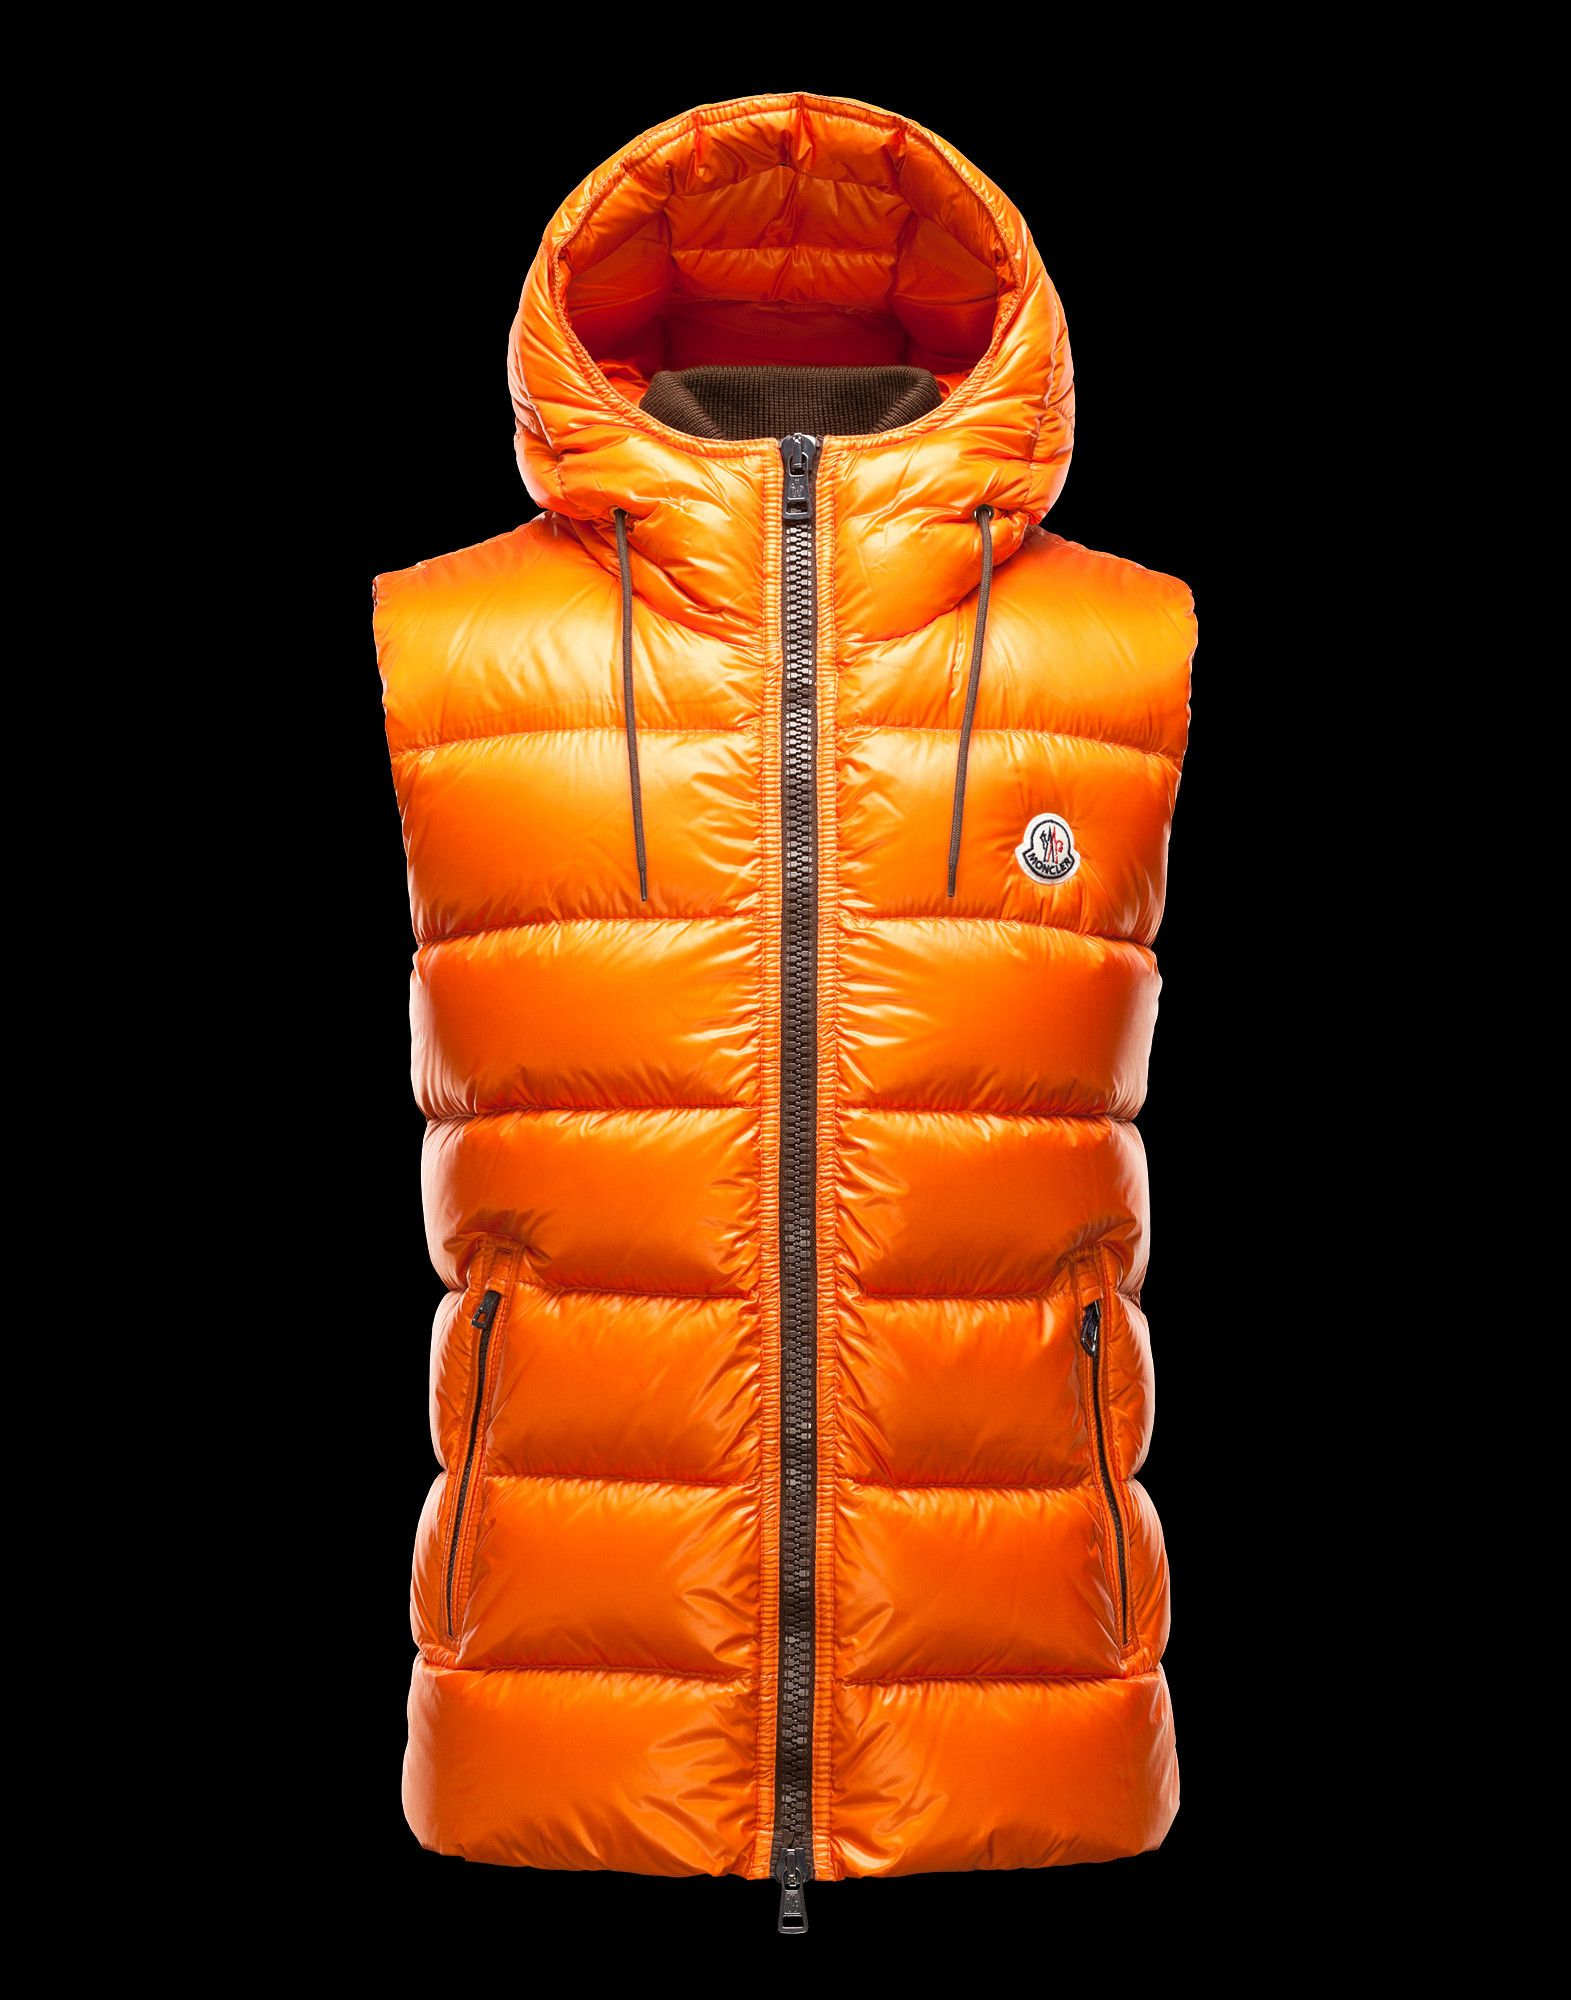 moncler   99 on   new york fashion   Pinterest   Jackets, Vest and ... 313364888b7